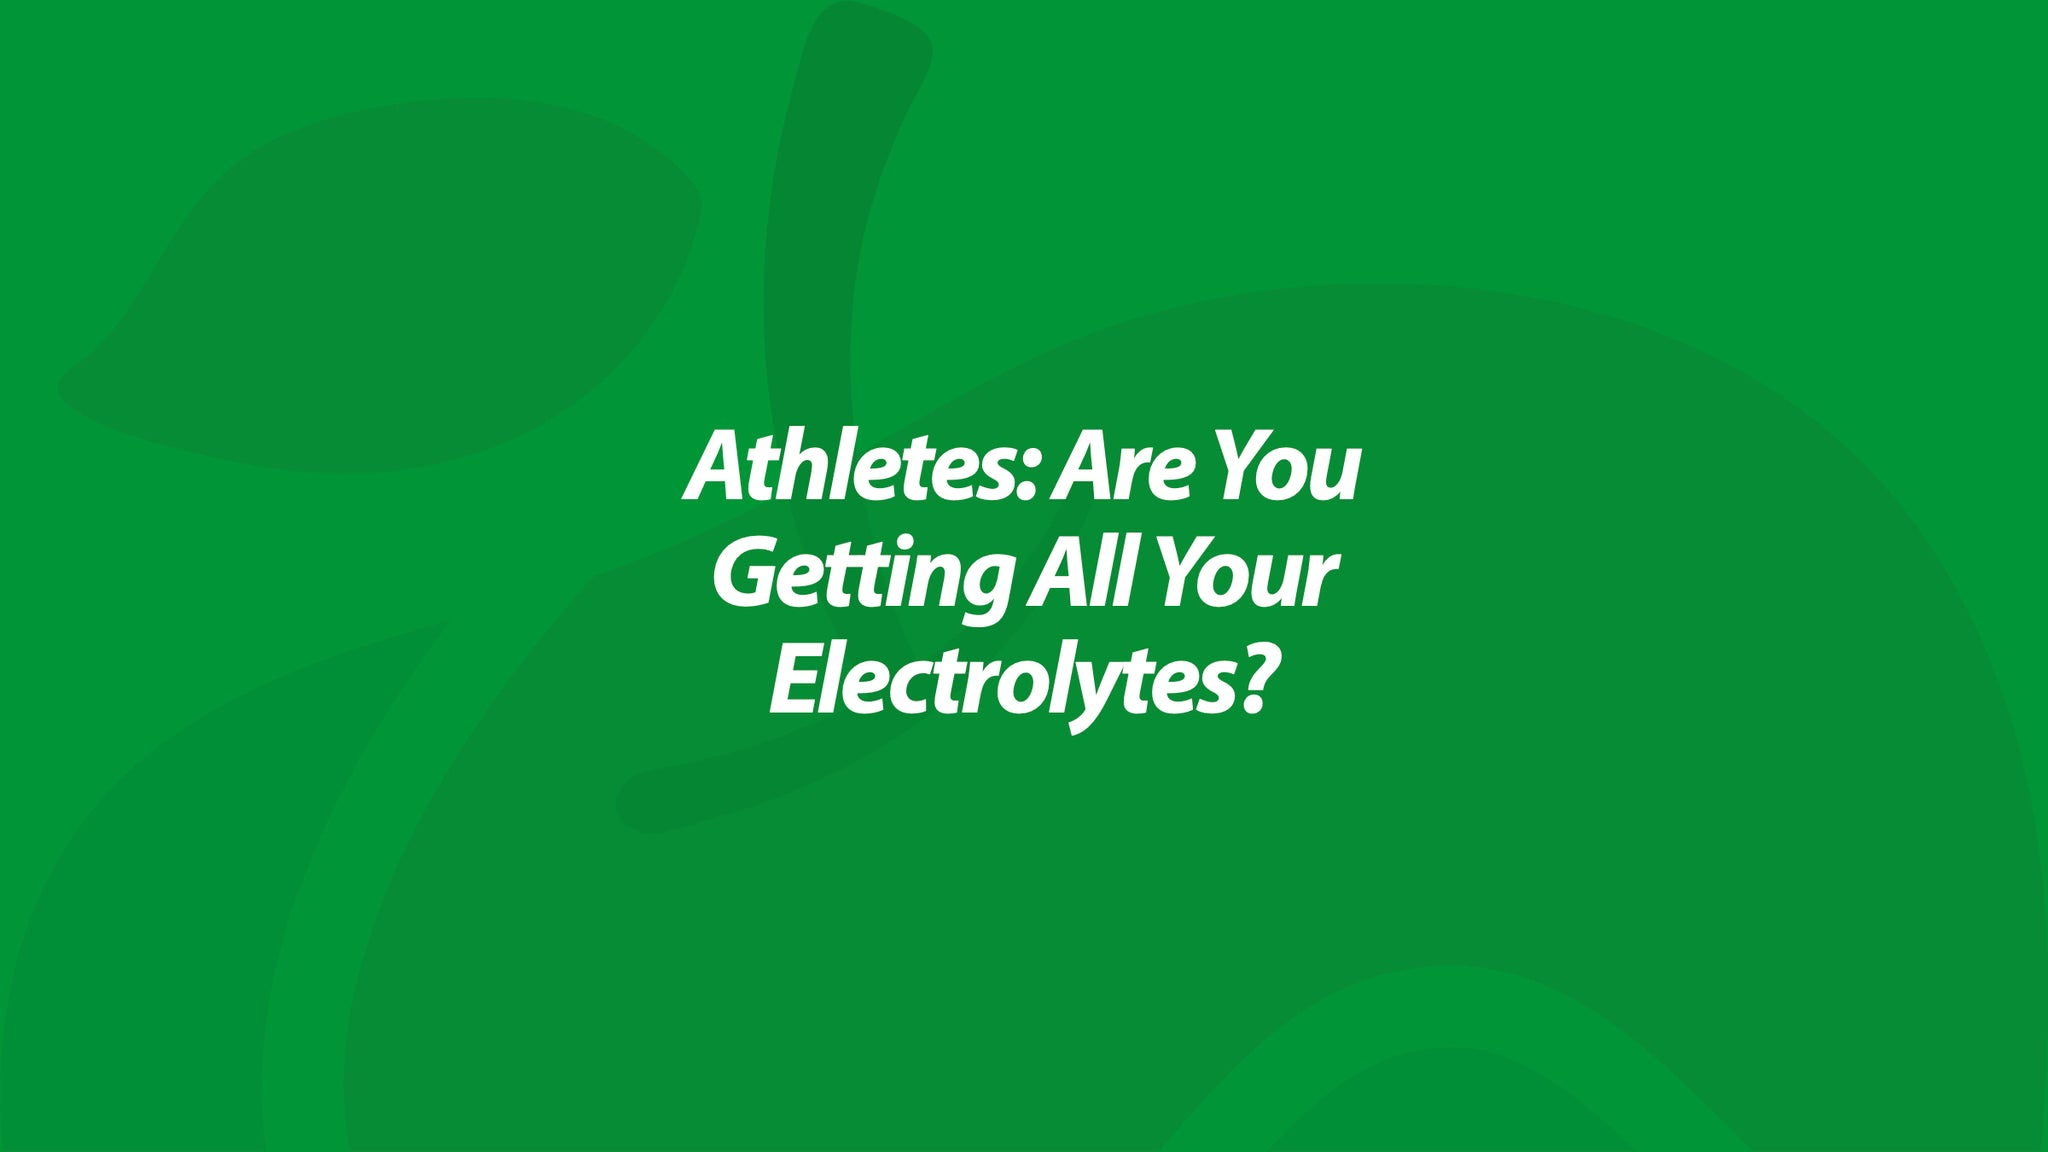 Athletes: Are You Getting All Your Electrolytes?